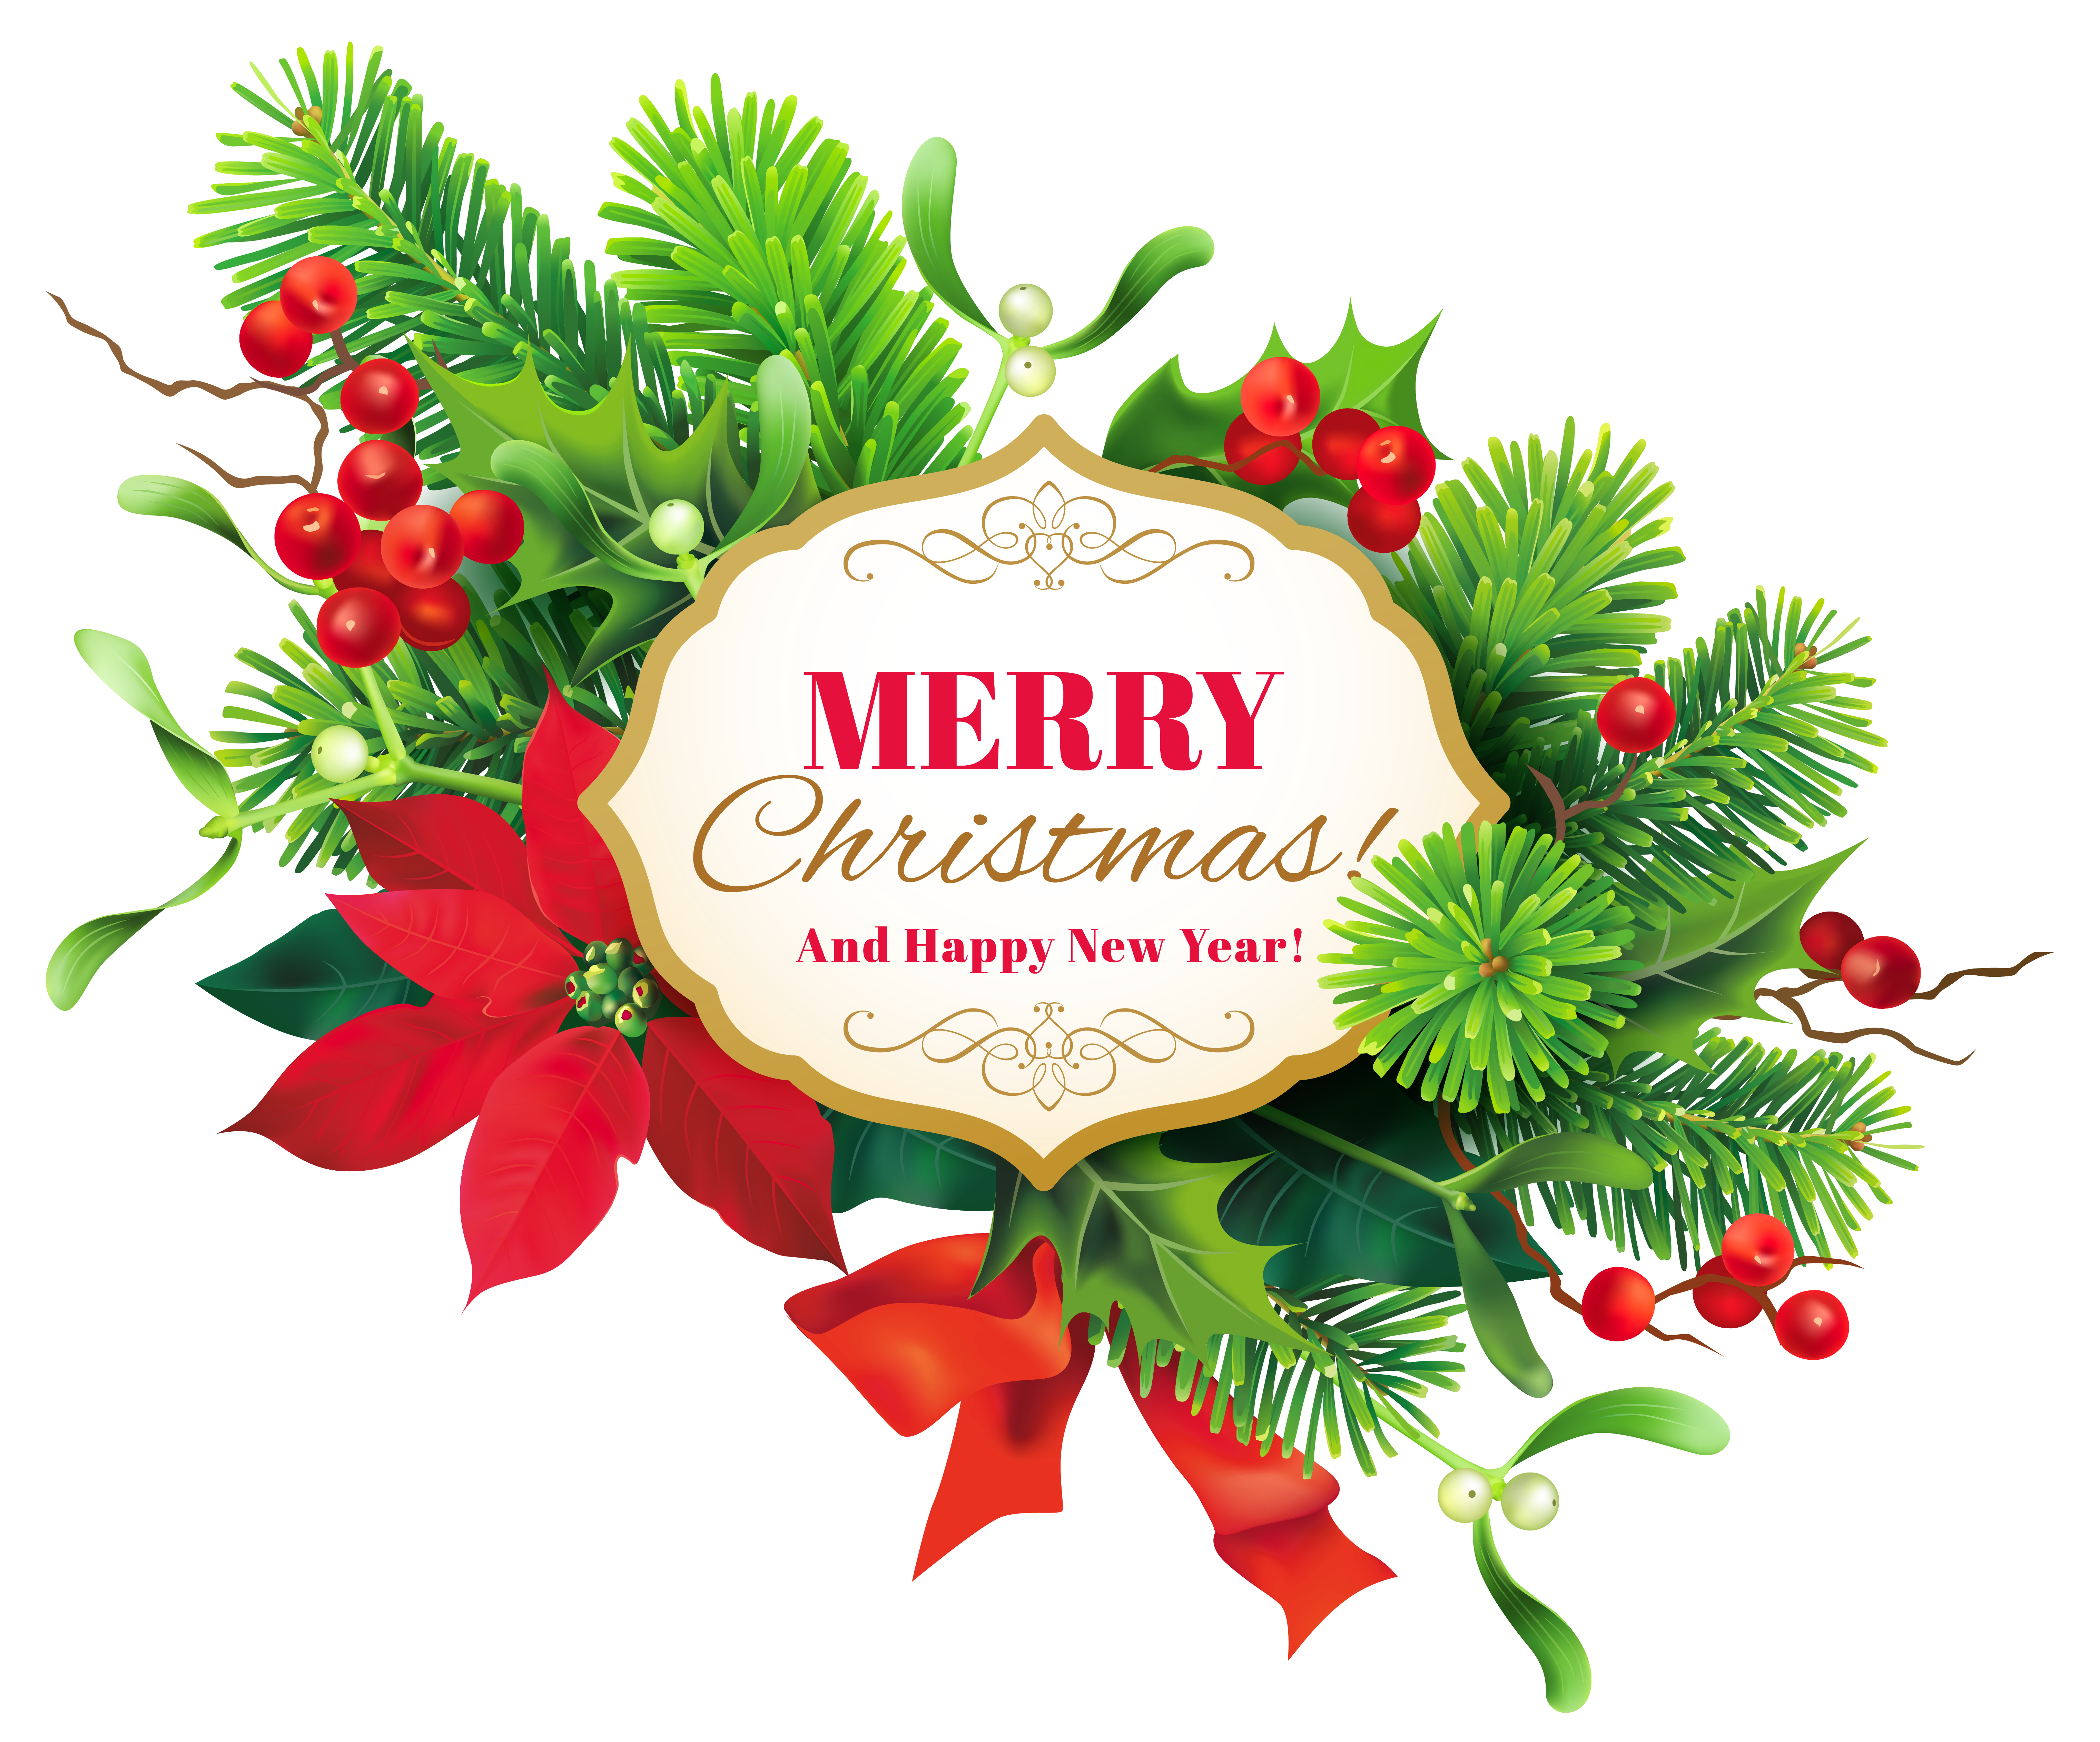 Christmas decor png. Merry clipart image gallery